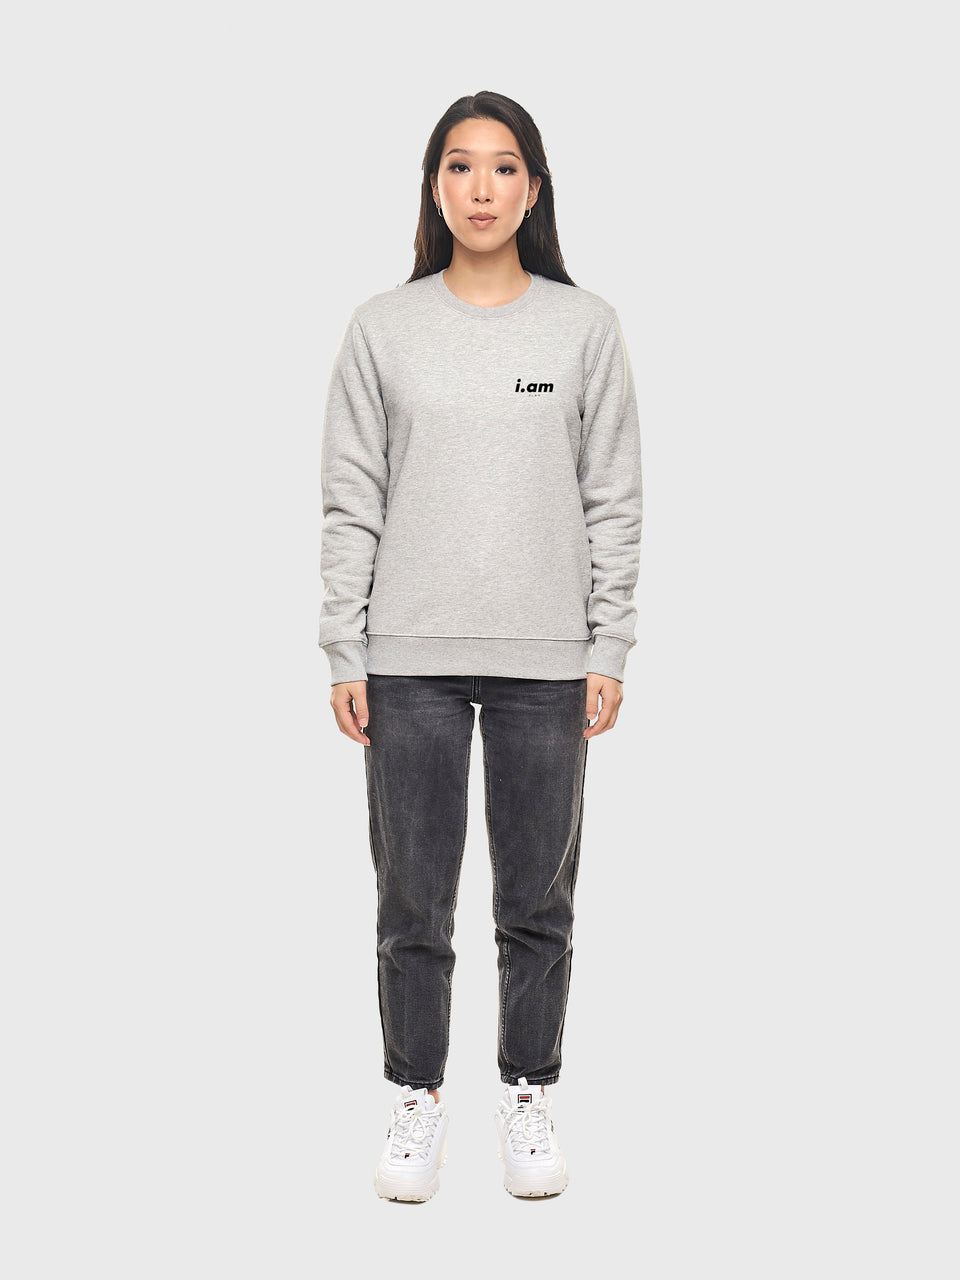 Made in London - Grey - Unisex Sweatshirt